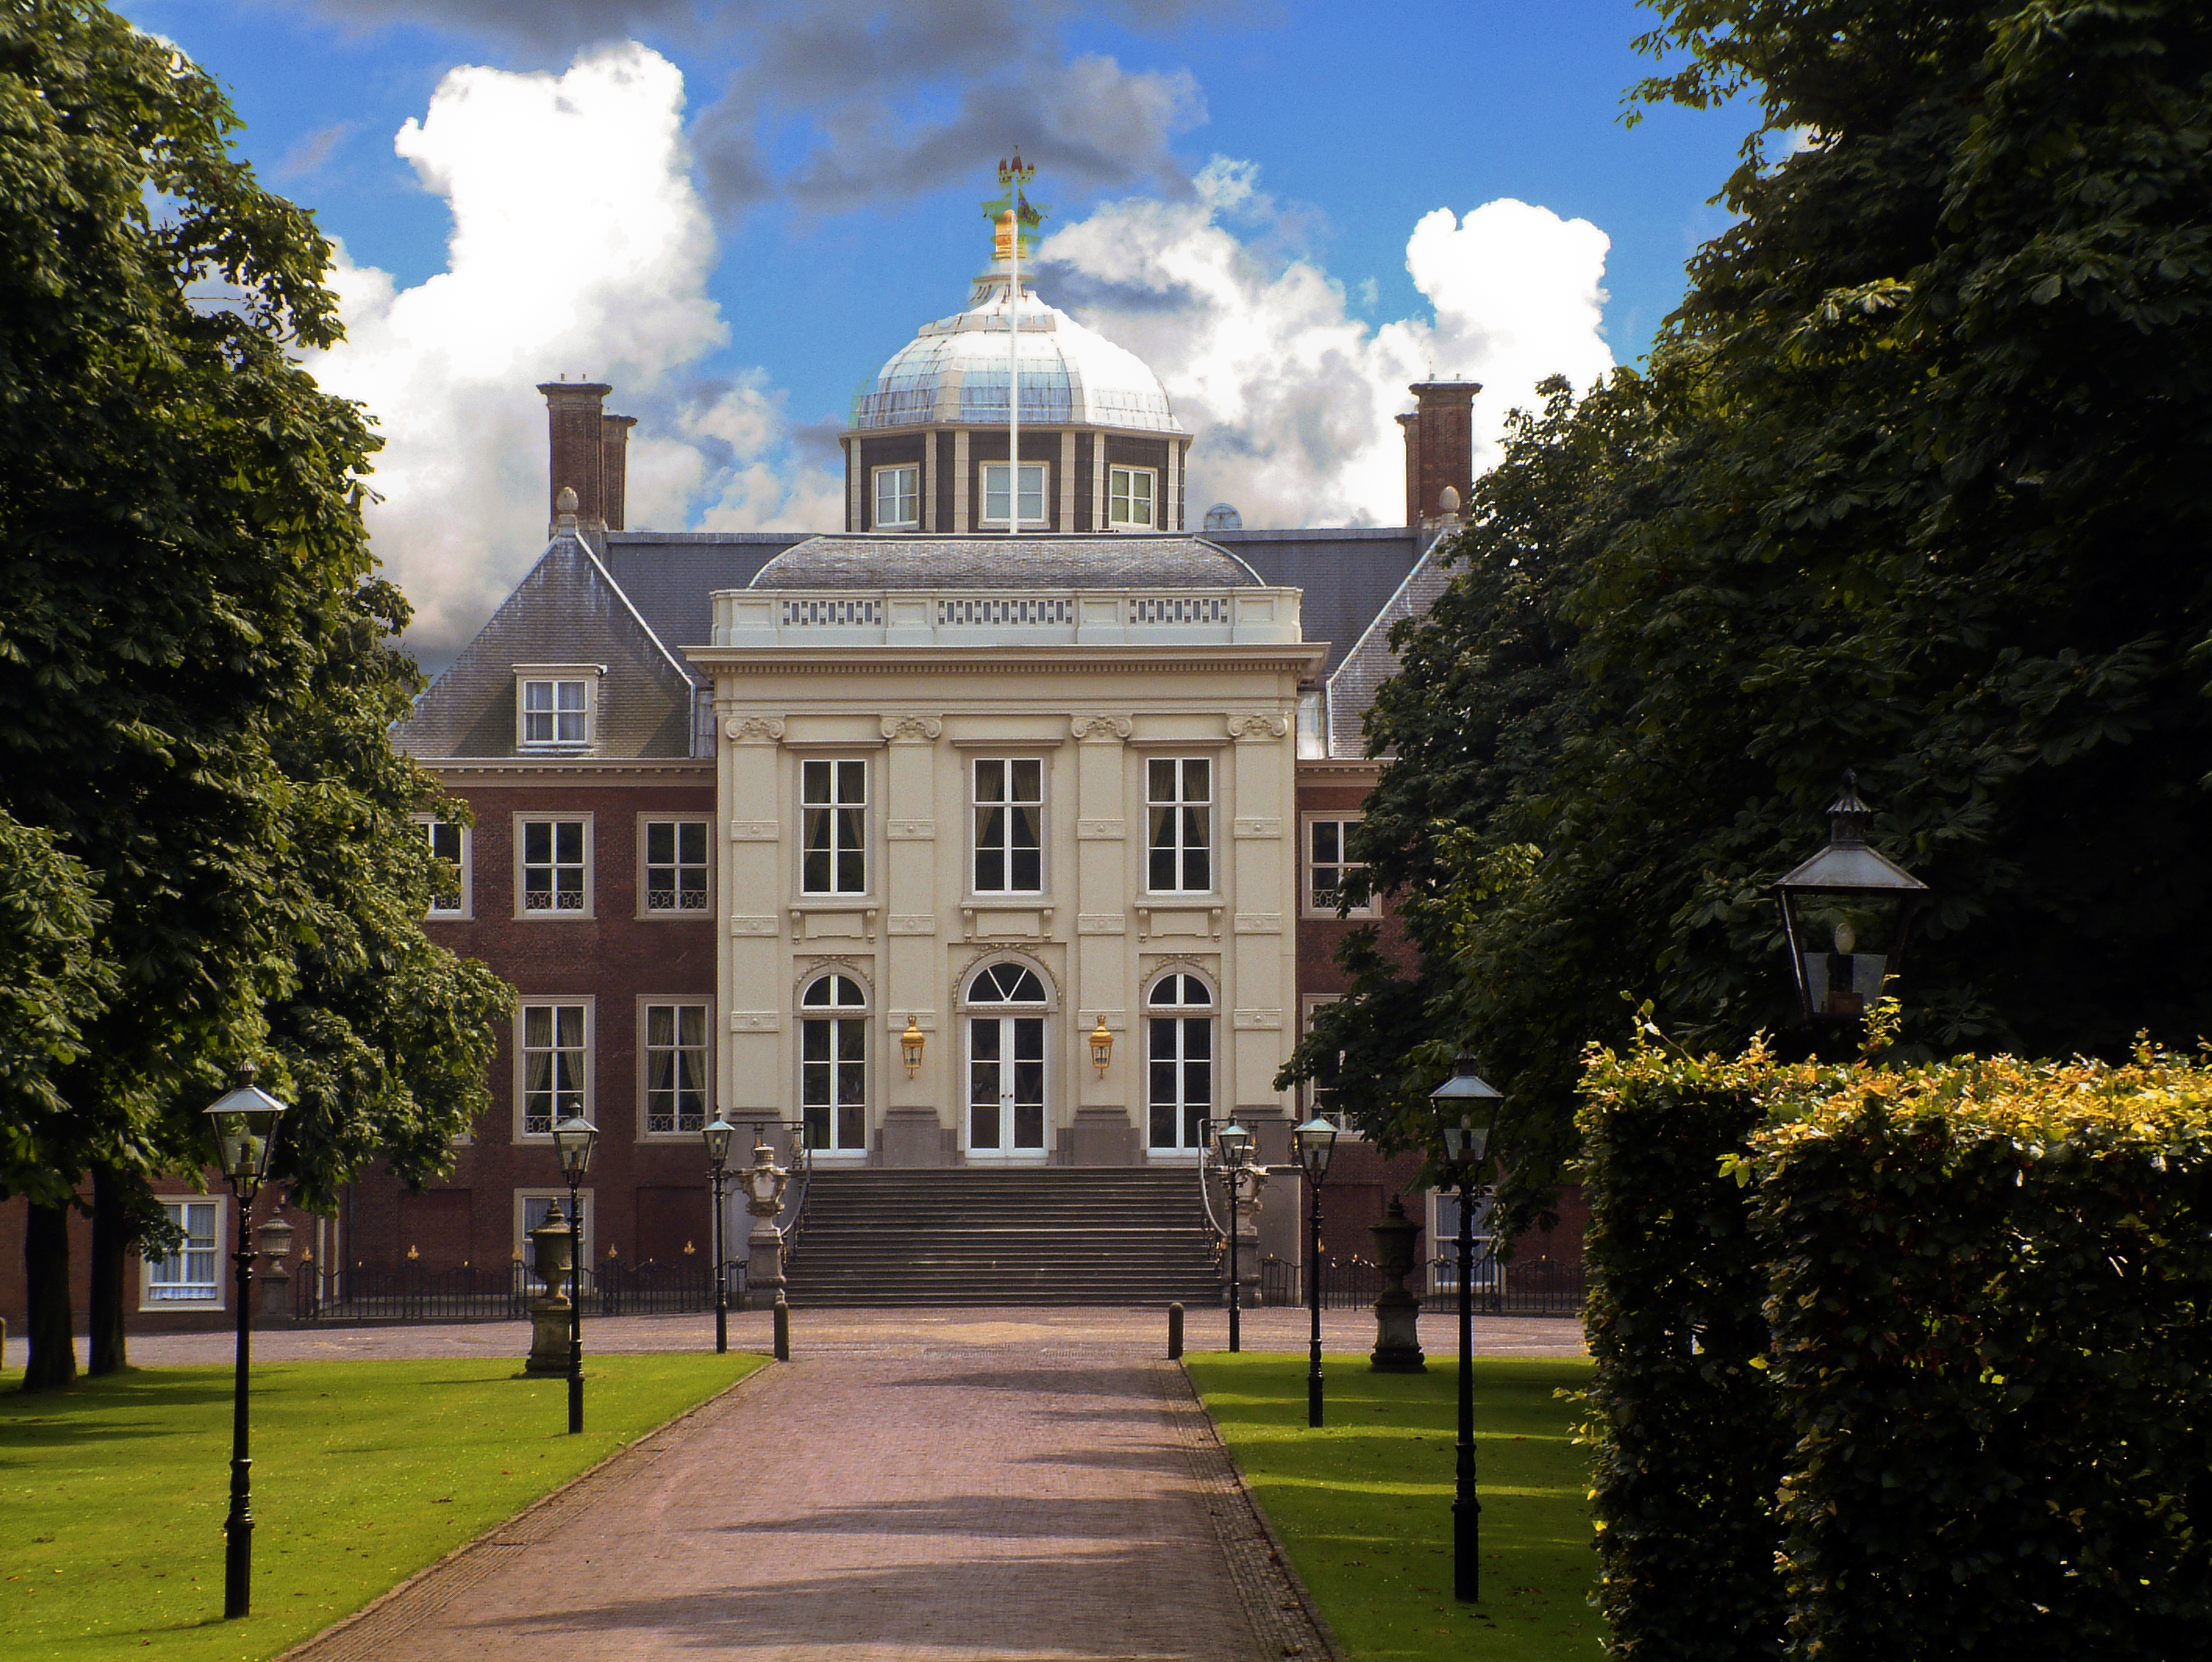 Huis ten Bosch (House in the Woods), the subject of Joris van der Haagen's painting, is a royal palace in The Hague. It is one of three official residences of the Dutch royal family. Image by PeteBobb. This file is licensed under the Creative Commons Attribution-Share Alike 3.0 Netherlands license.